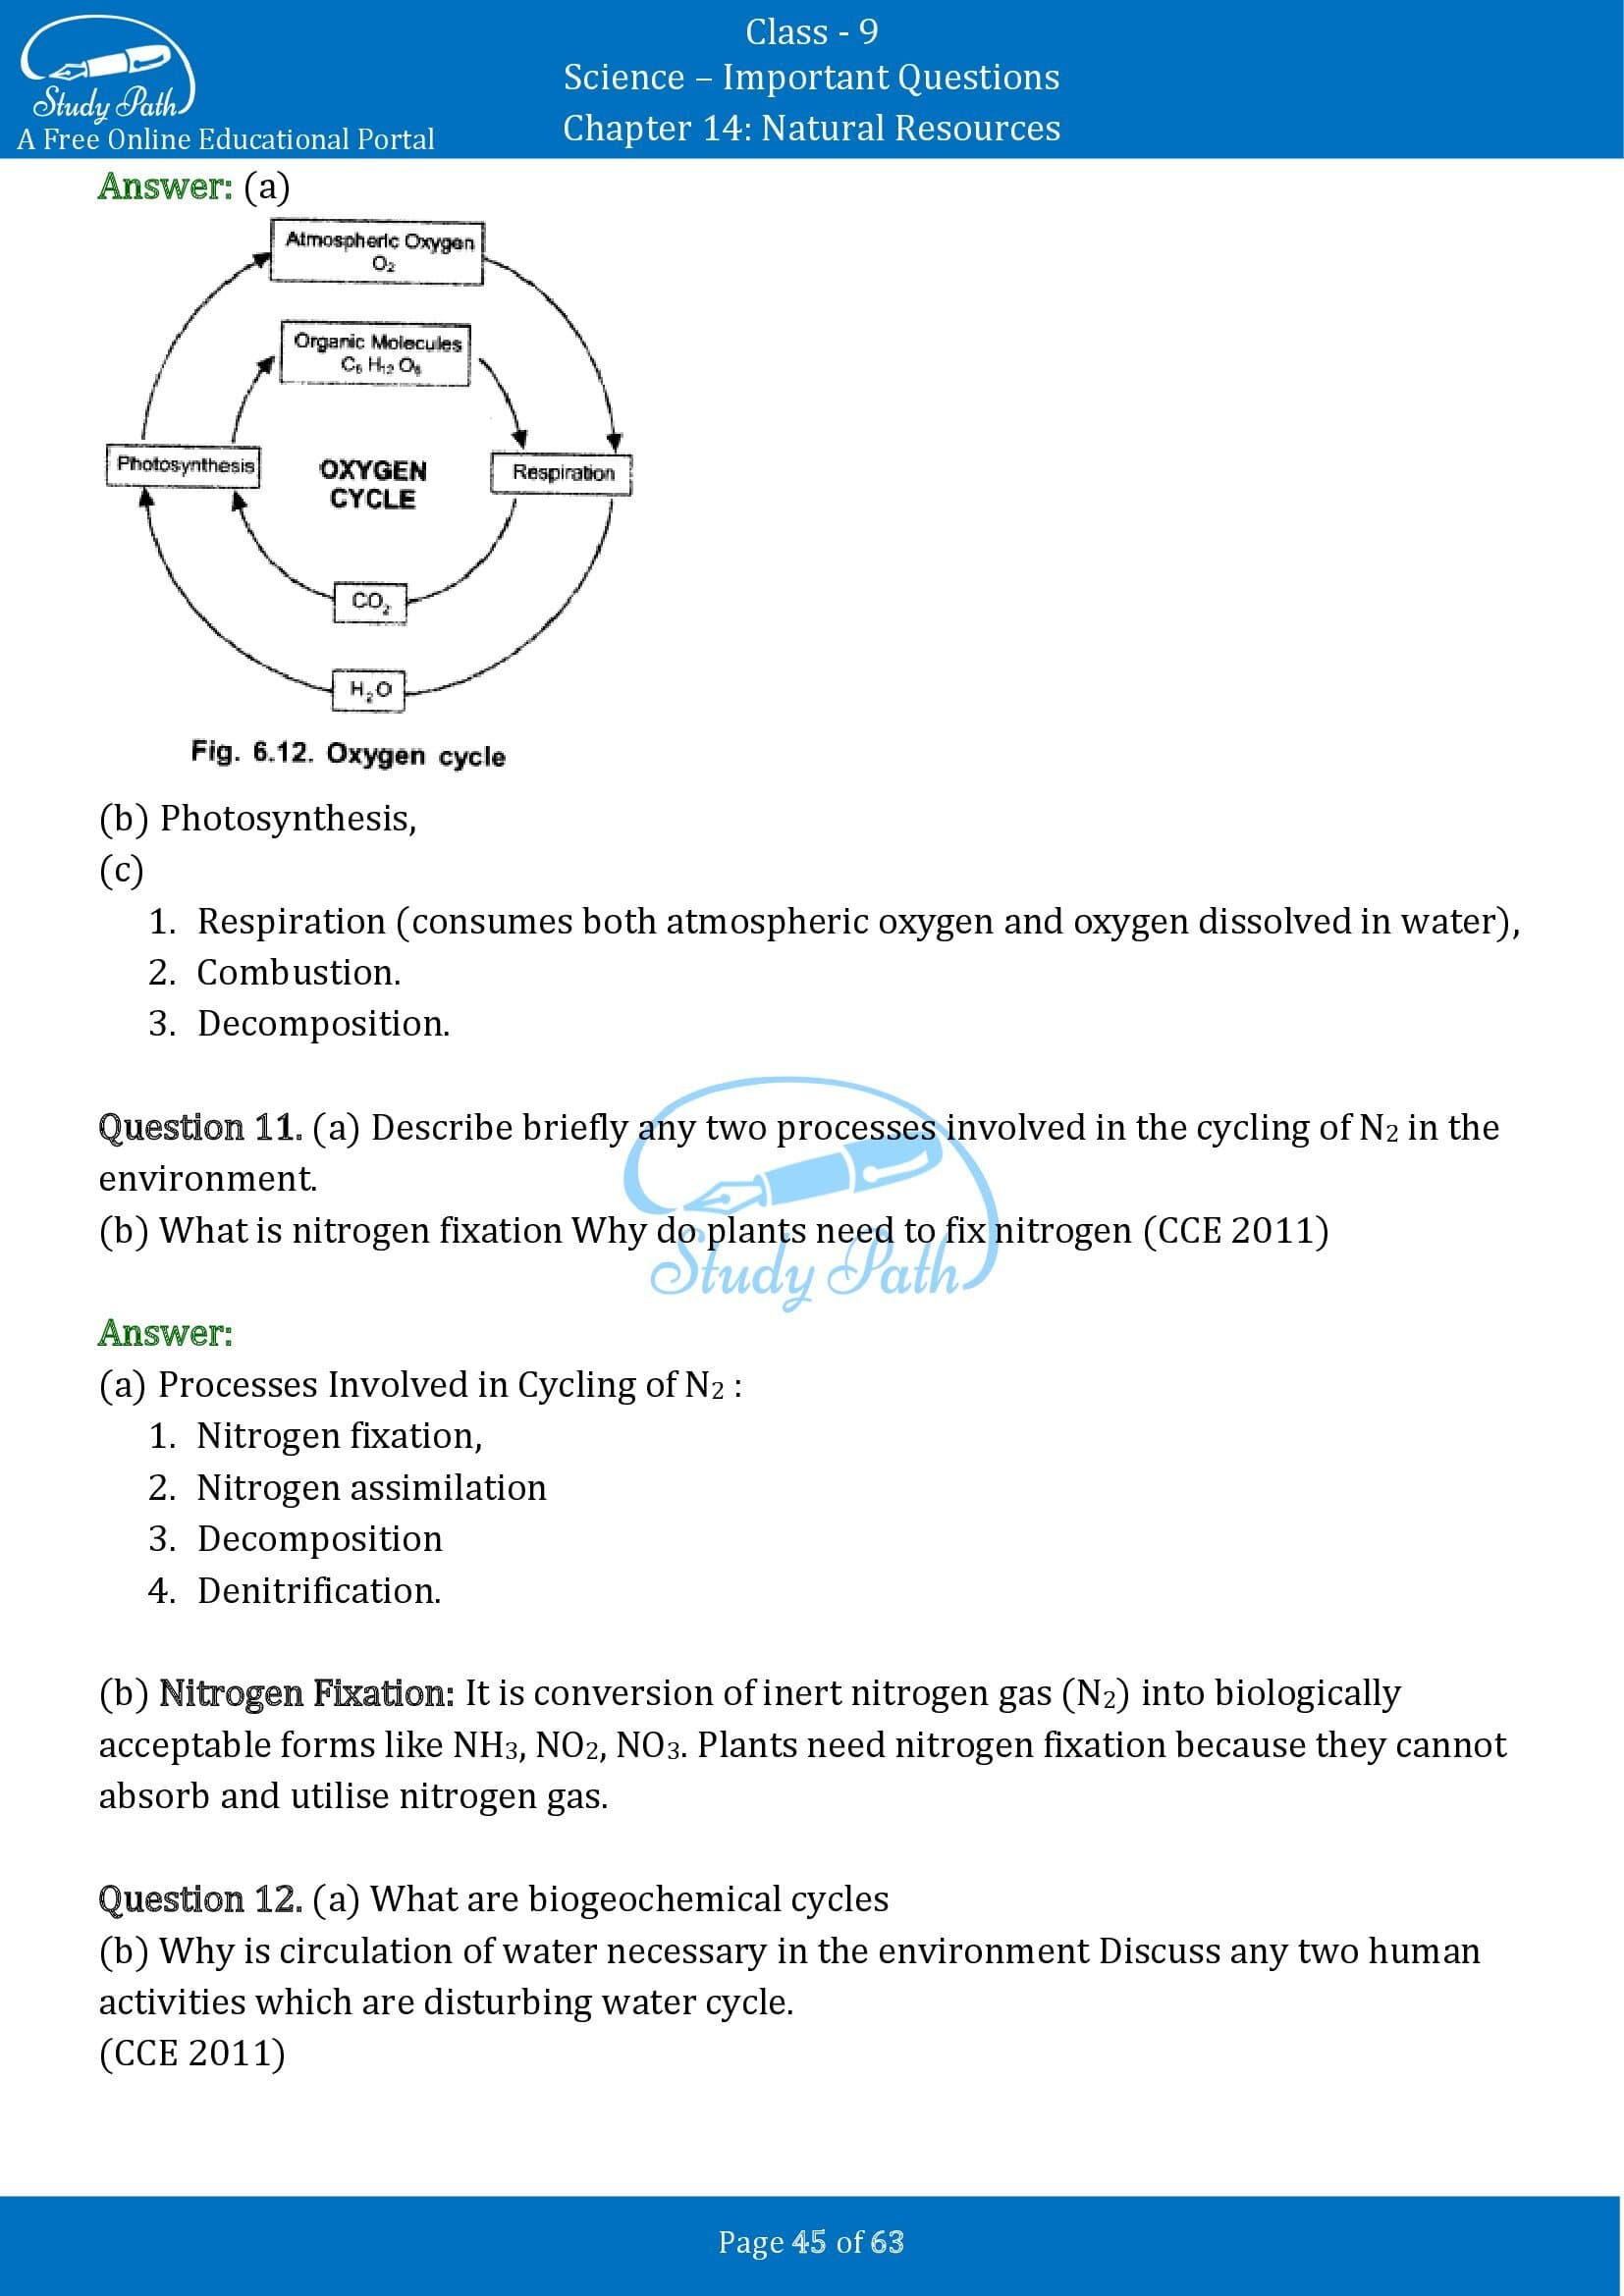 Important Questions for Class 9 Science Chapter 14 Natural Resources 00045